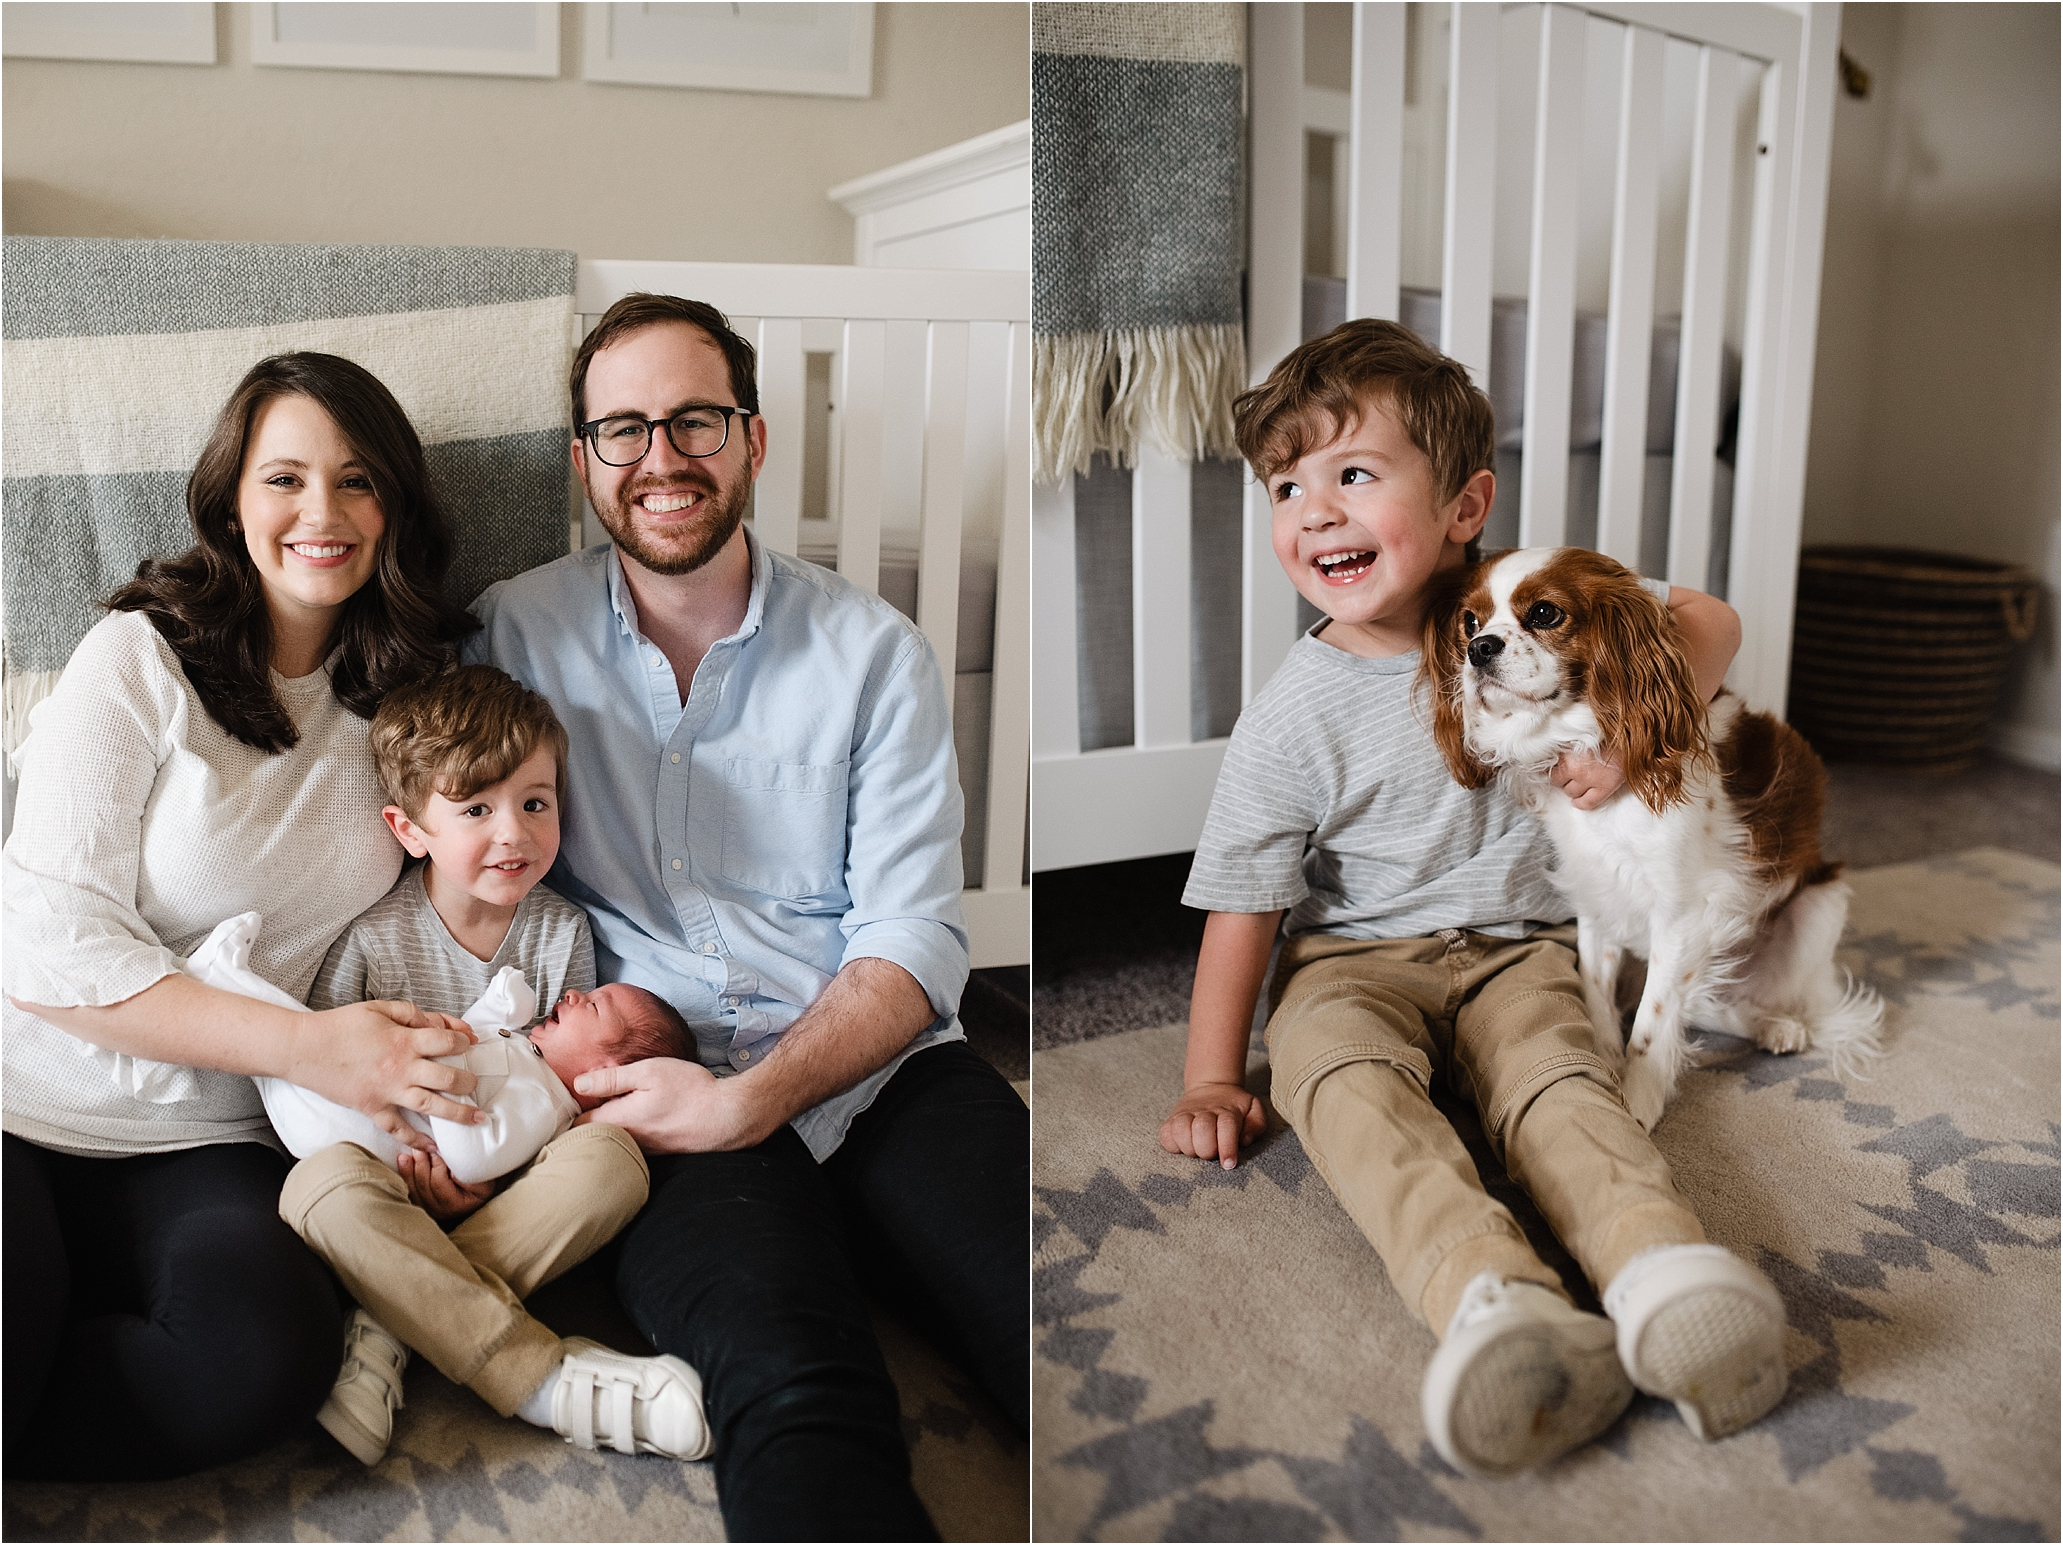 newborn photo oklahoma family photographer children kids extended family growing babies baby home crib parents mom dad okc norman edmond birth dog puppy animals cavalier king charles spaniel